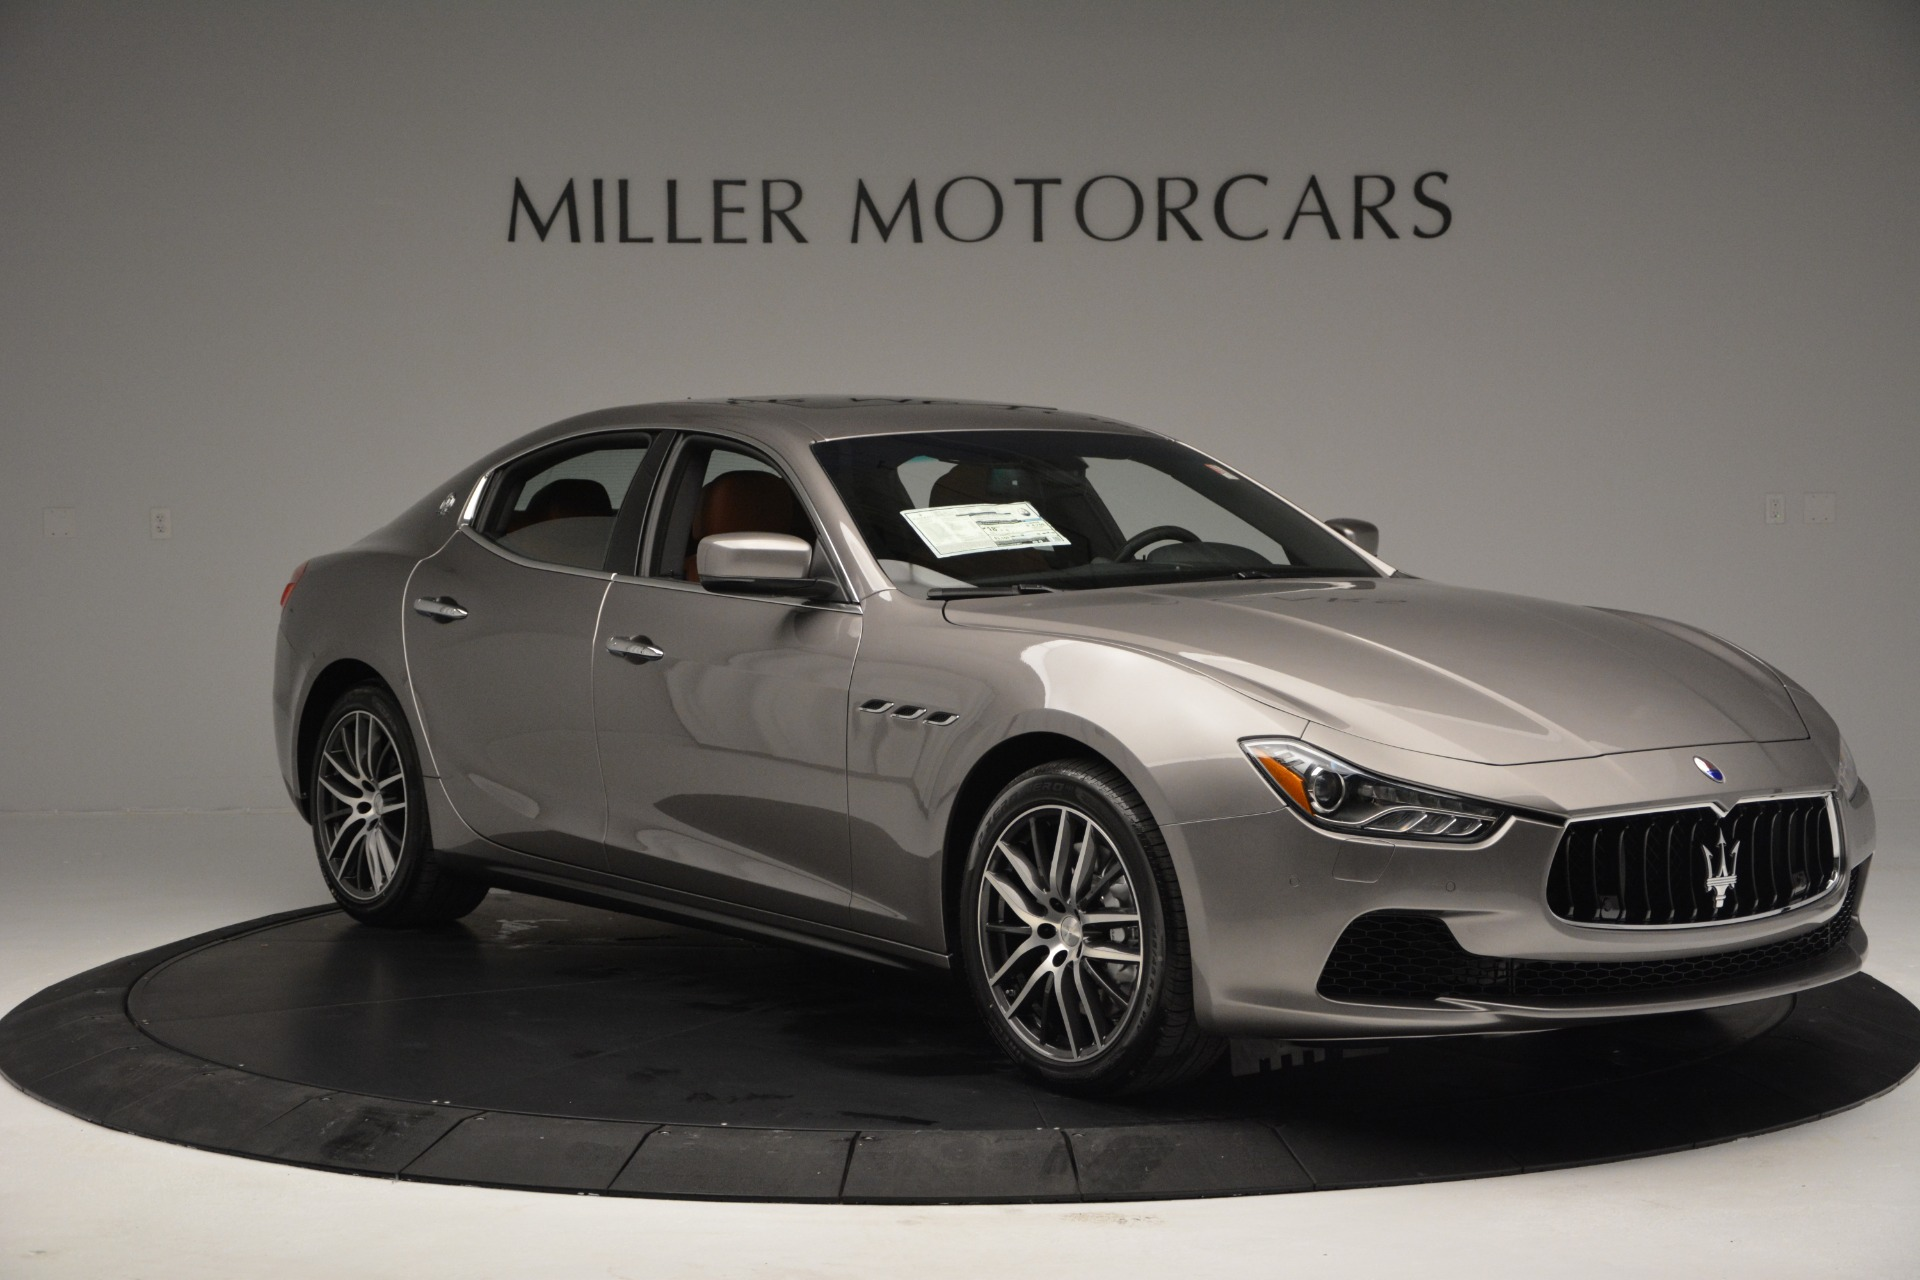 Used 2017 Maserati Ghibli S Q4 EX-LOANER For Sale In Westport, CT 608_p11